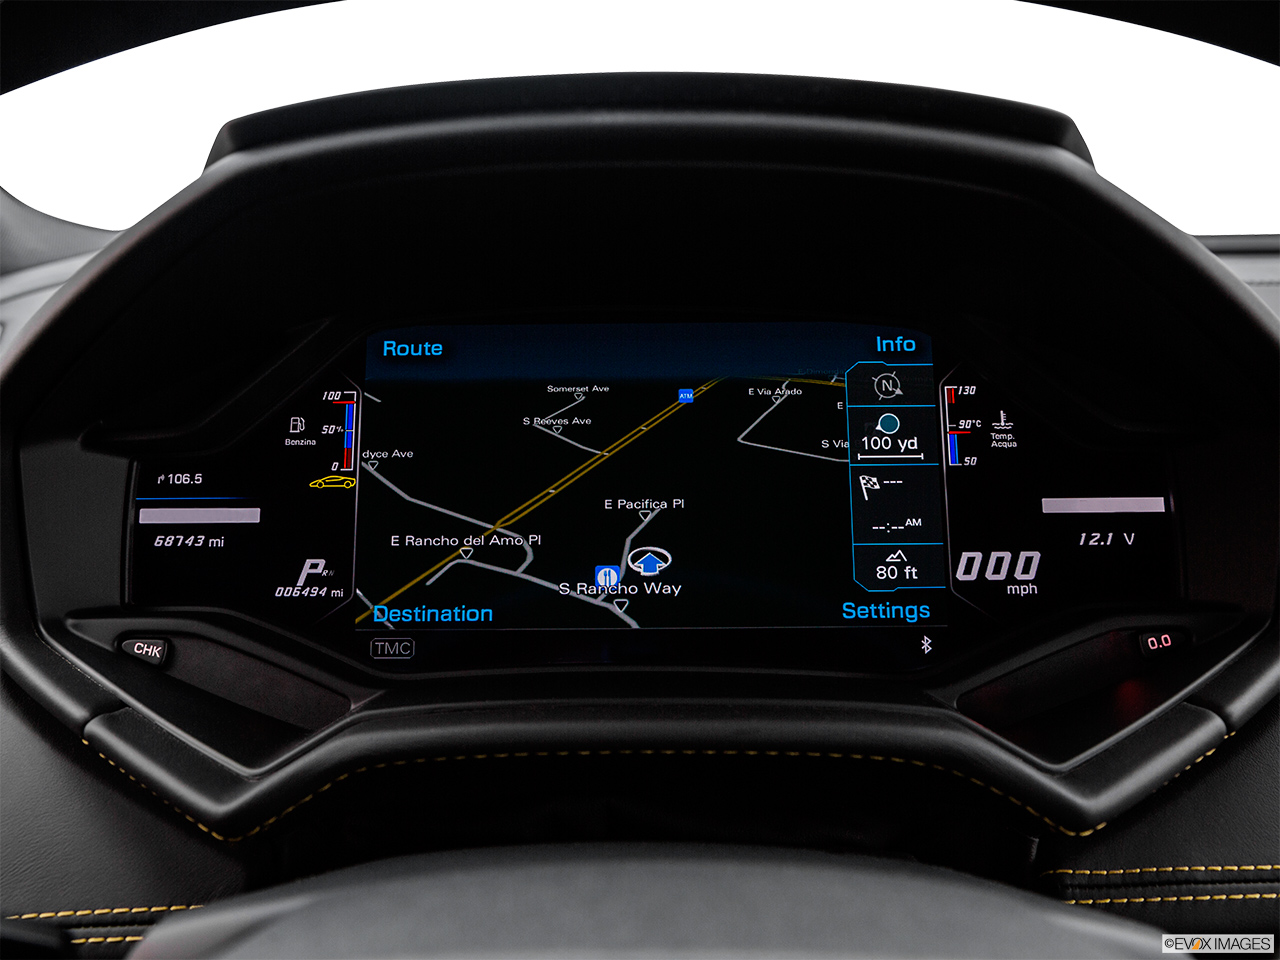 2015 Lamborghini Huracan LP 610-4 Driver position view of navigation system.